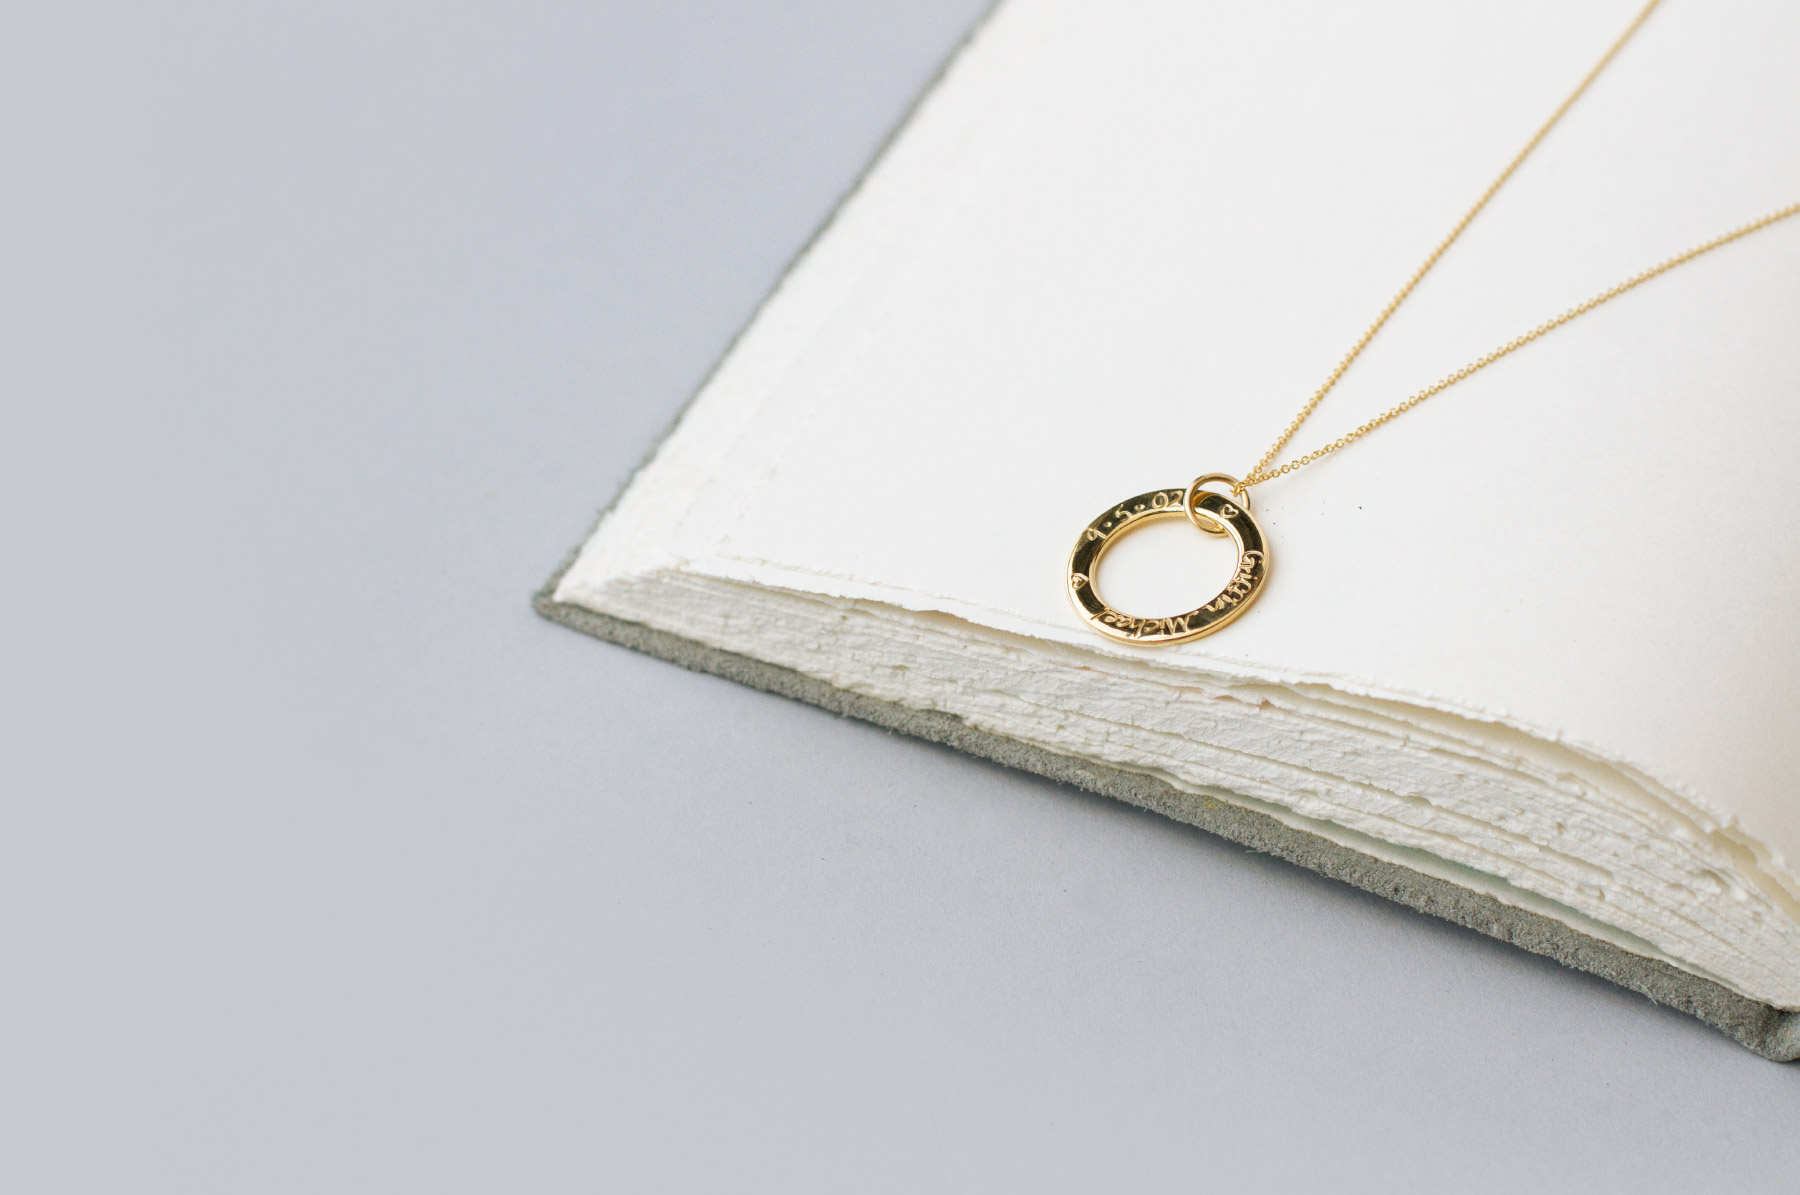 Dainty necklace with subtle engraving